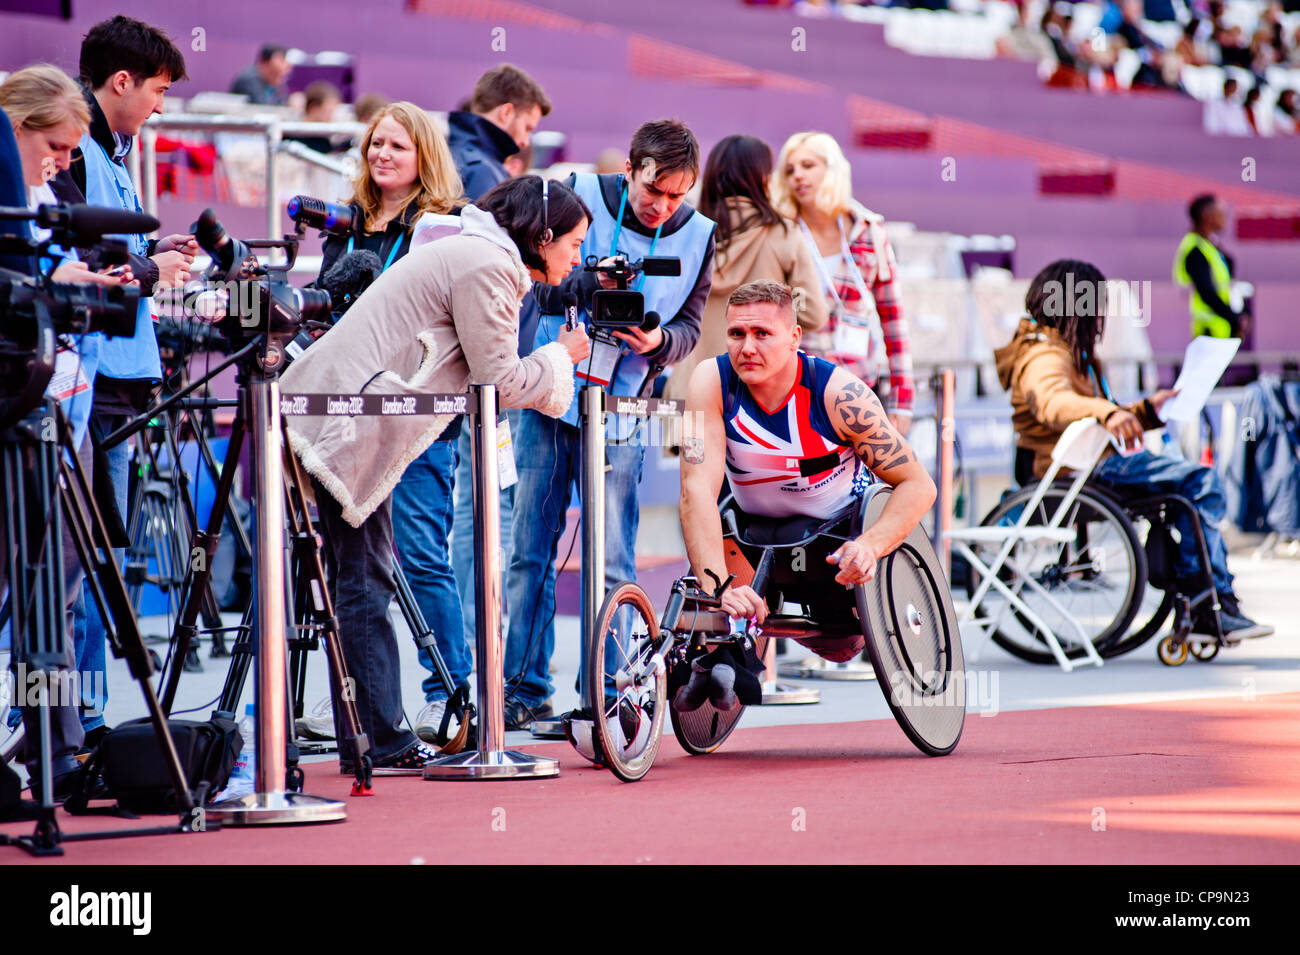 Athlete at the Visa London Disability Athletics Challenge at the Olympic Stadium in London on May 8, 2012. - Stock Image